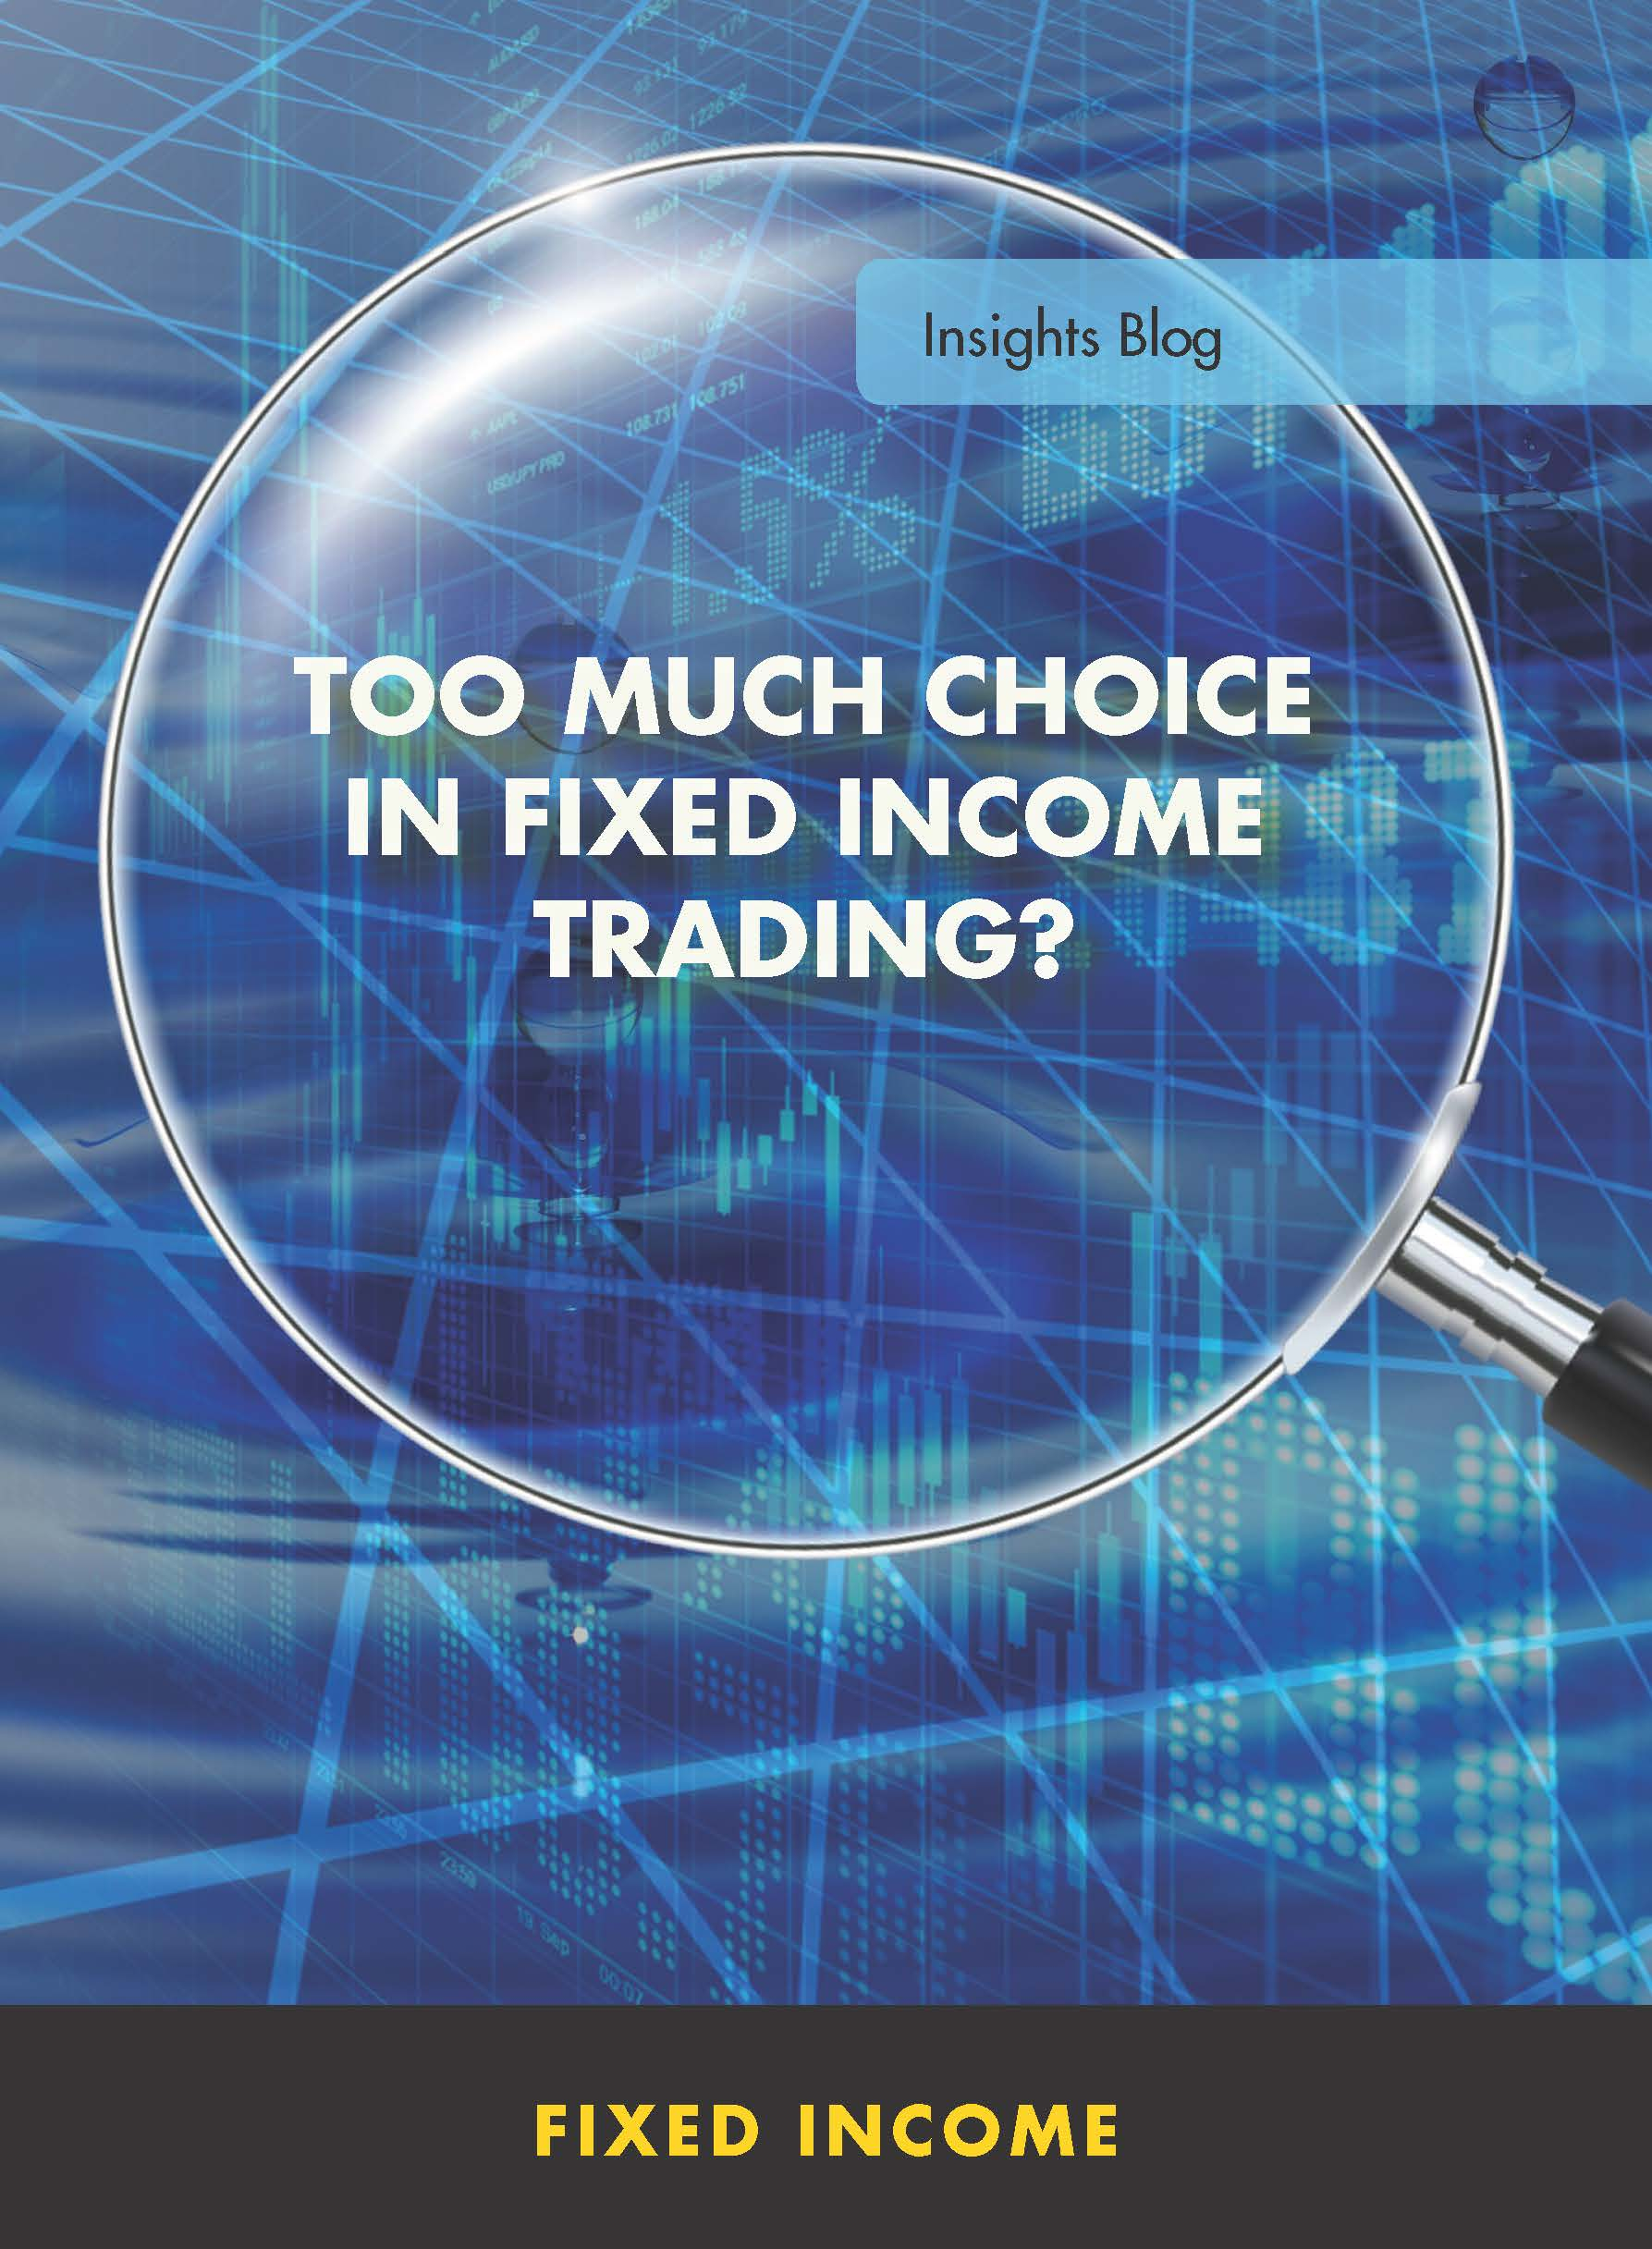 Too Much Choice in Fixed Income Trading?